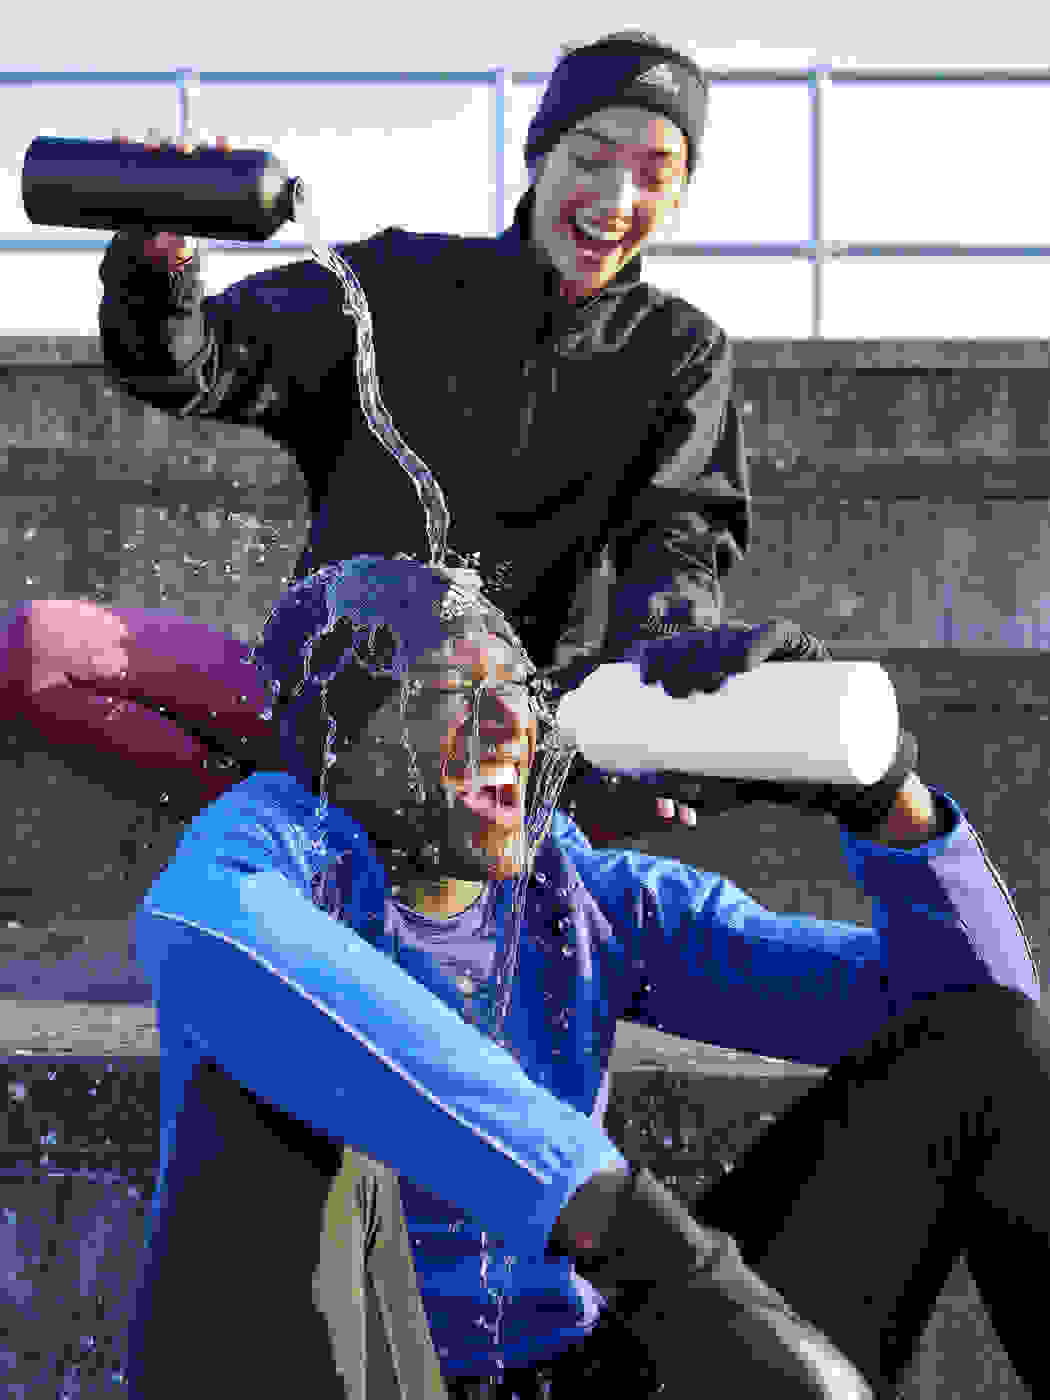 Female runner playfully pours water from a water bottle over a laughing male runner's head.